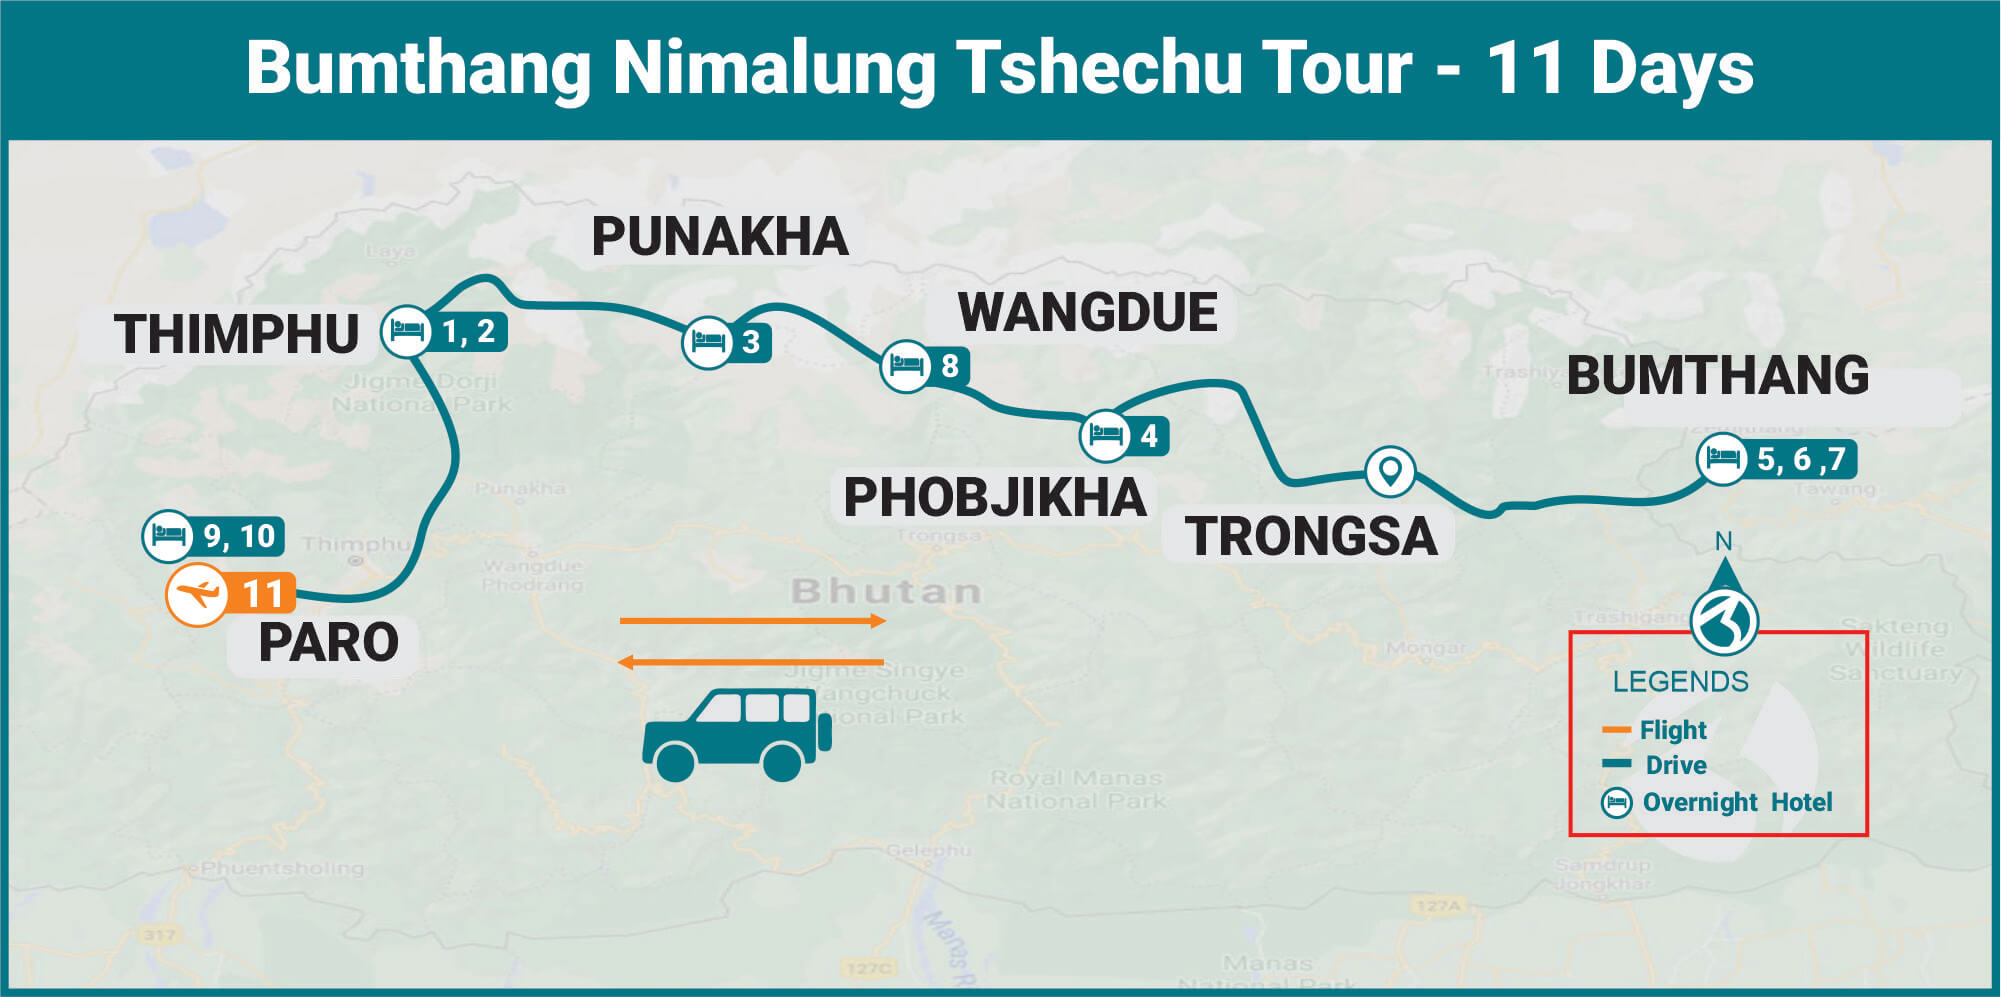 Bumthang Nimalung Tshechu Tour - 11 Days Route Map